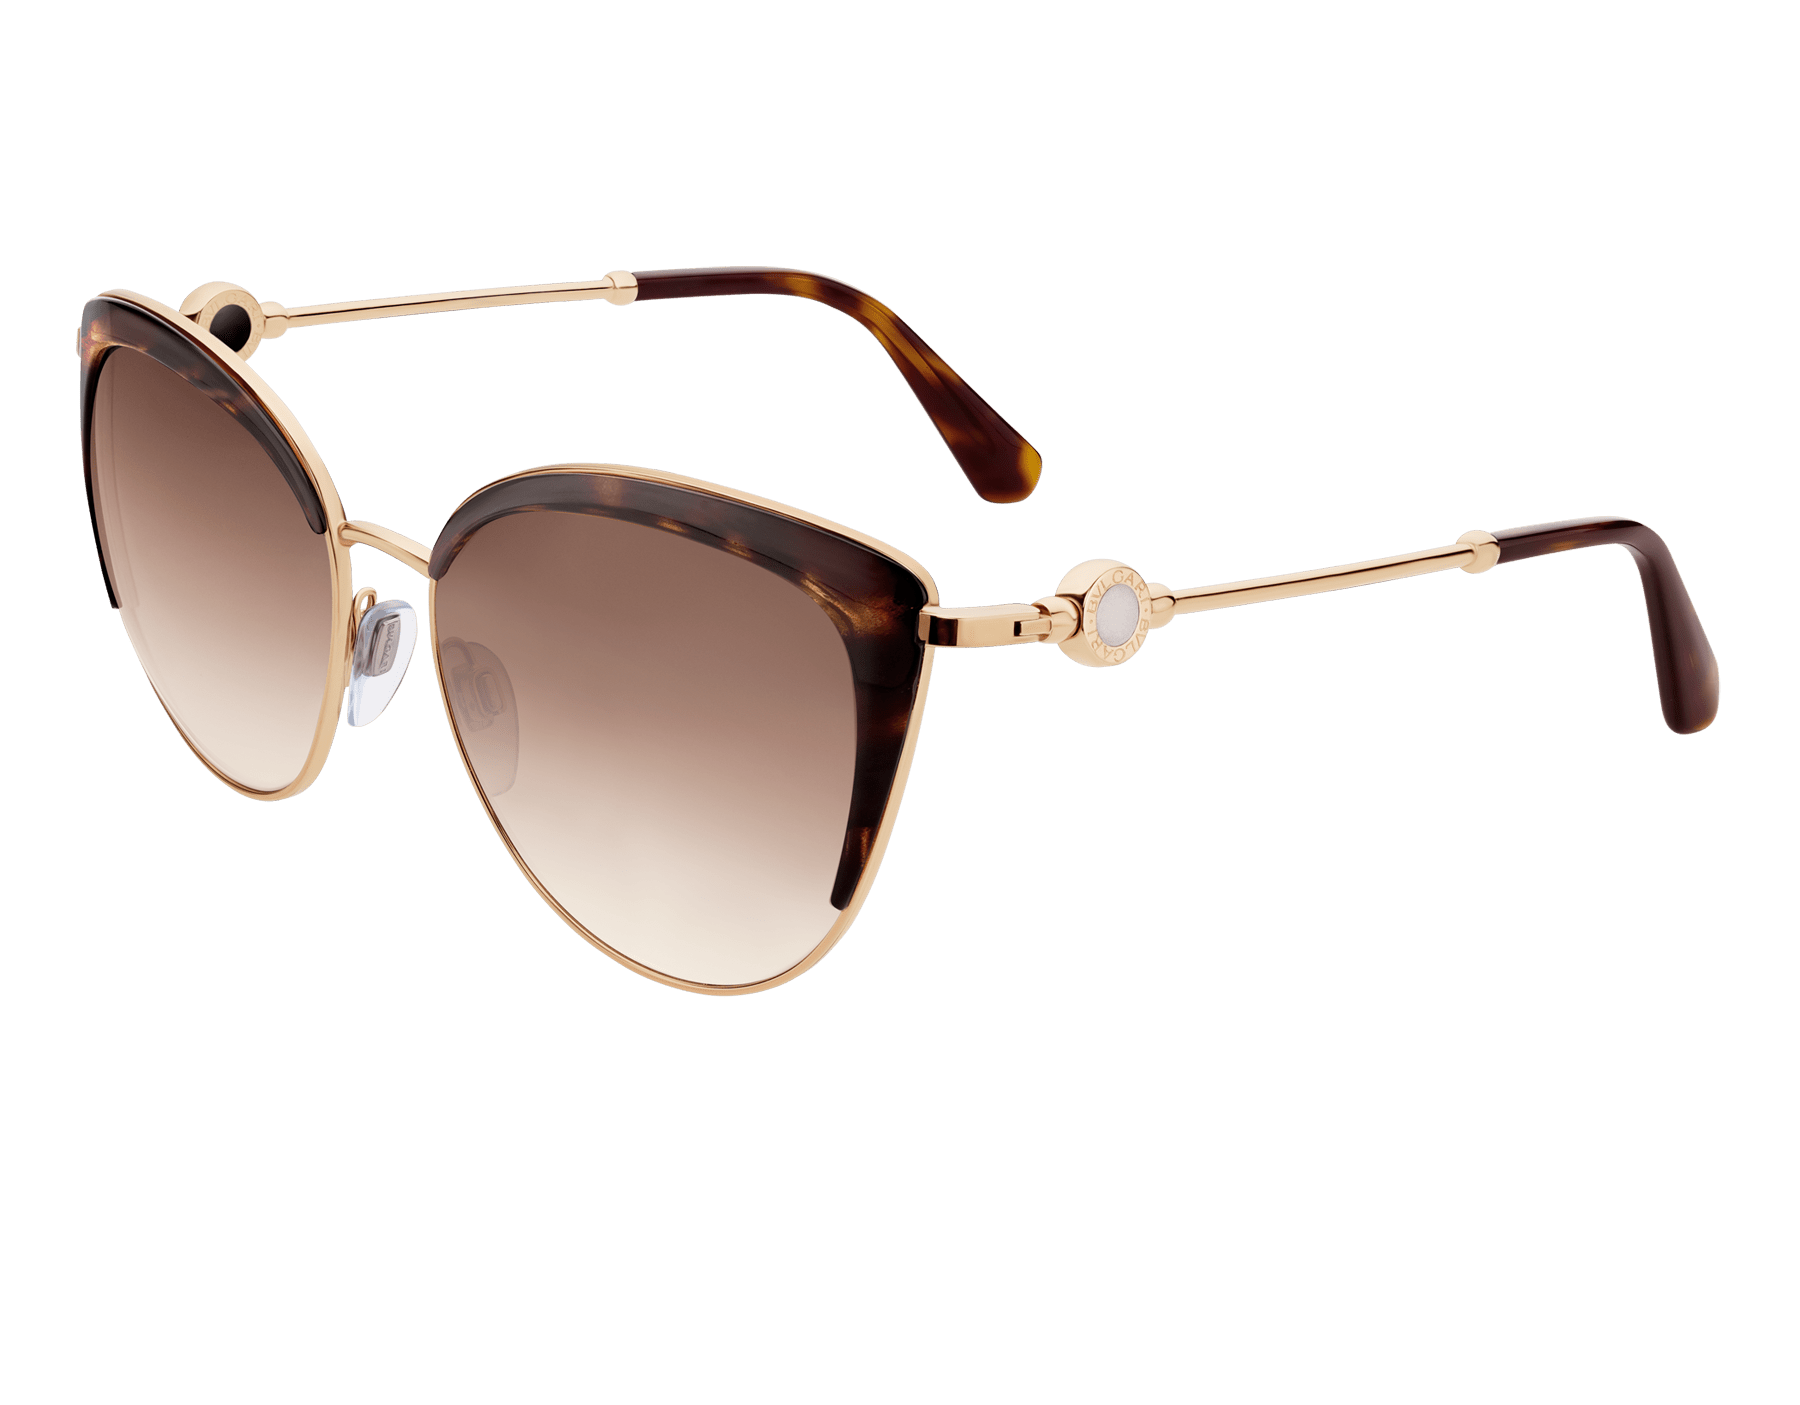 BVLGARI BVLGARI soft cat-eye metal sunglasses featuring a round décor with double logo. 903914 image 1